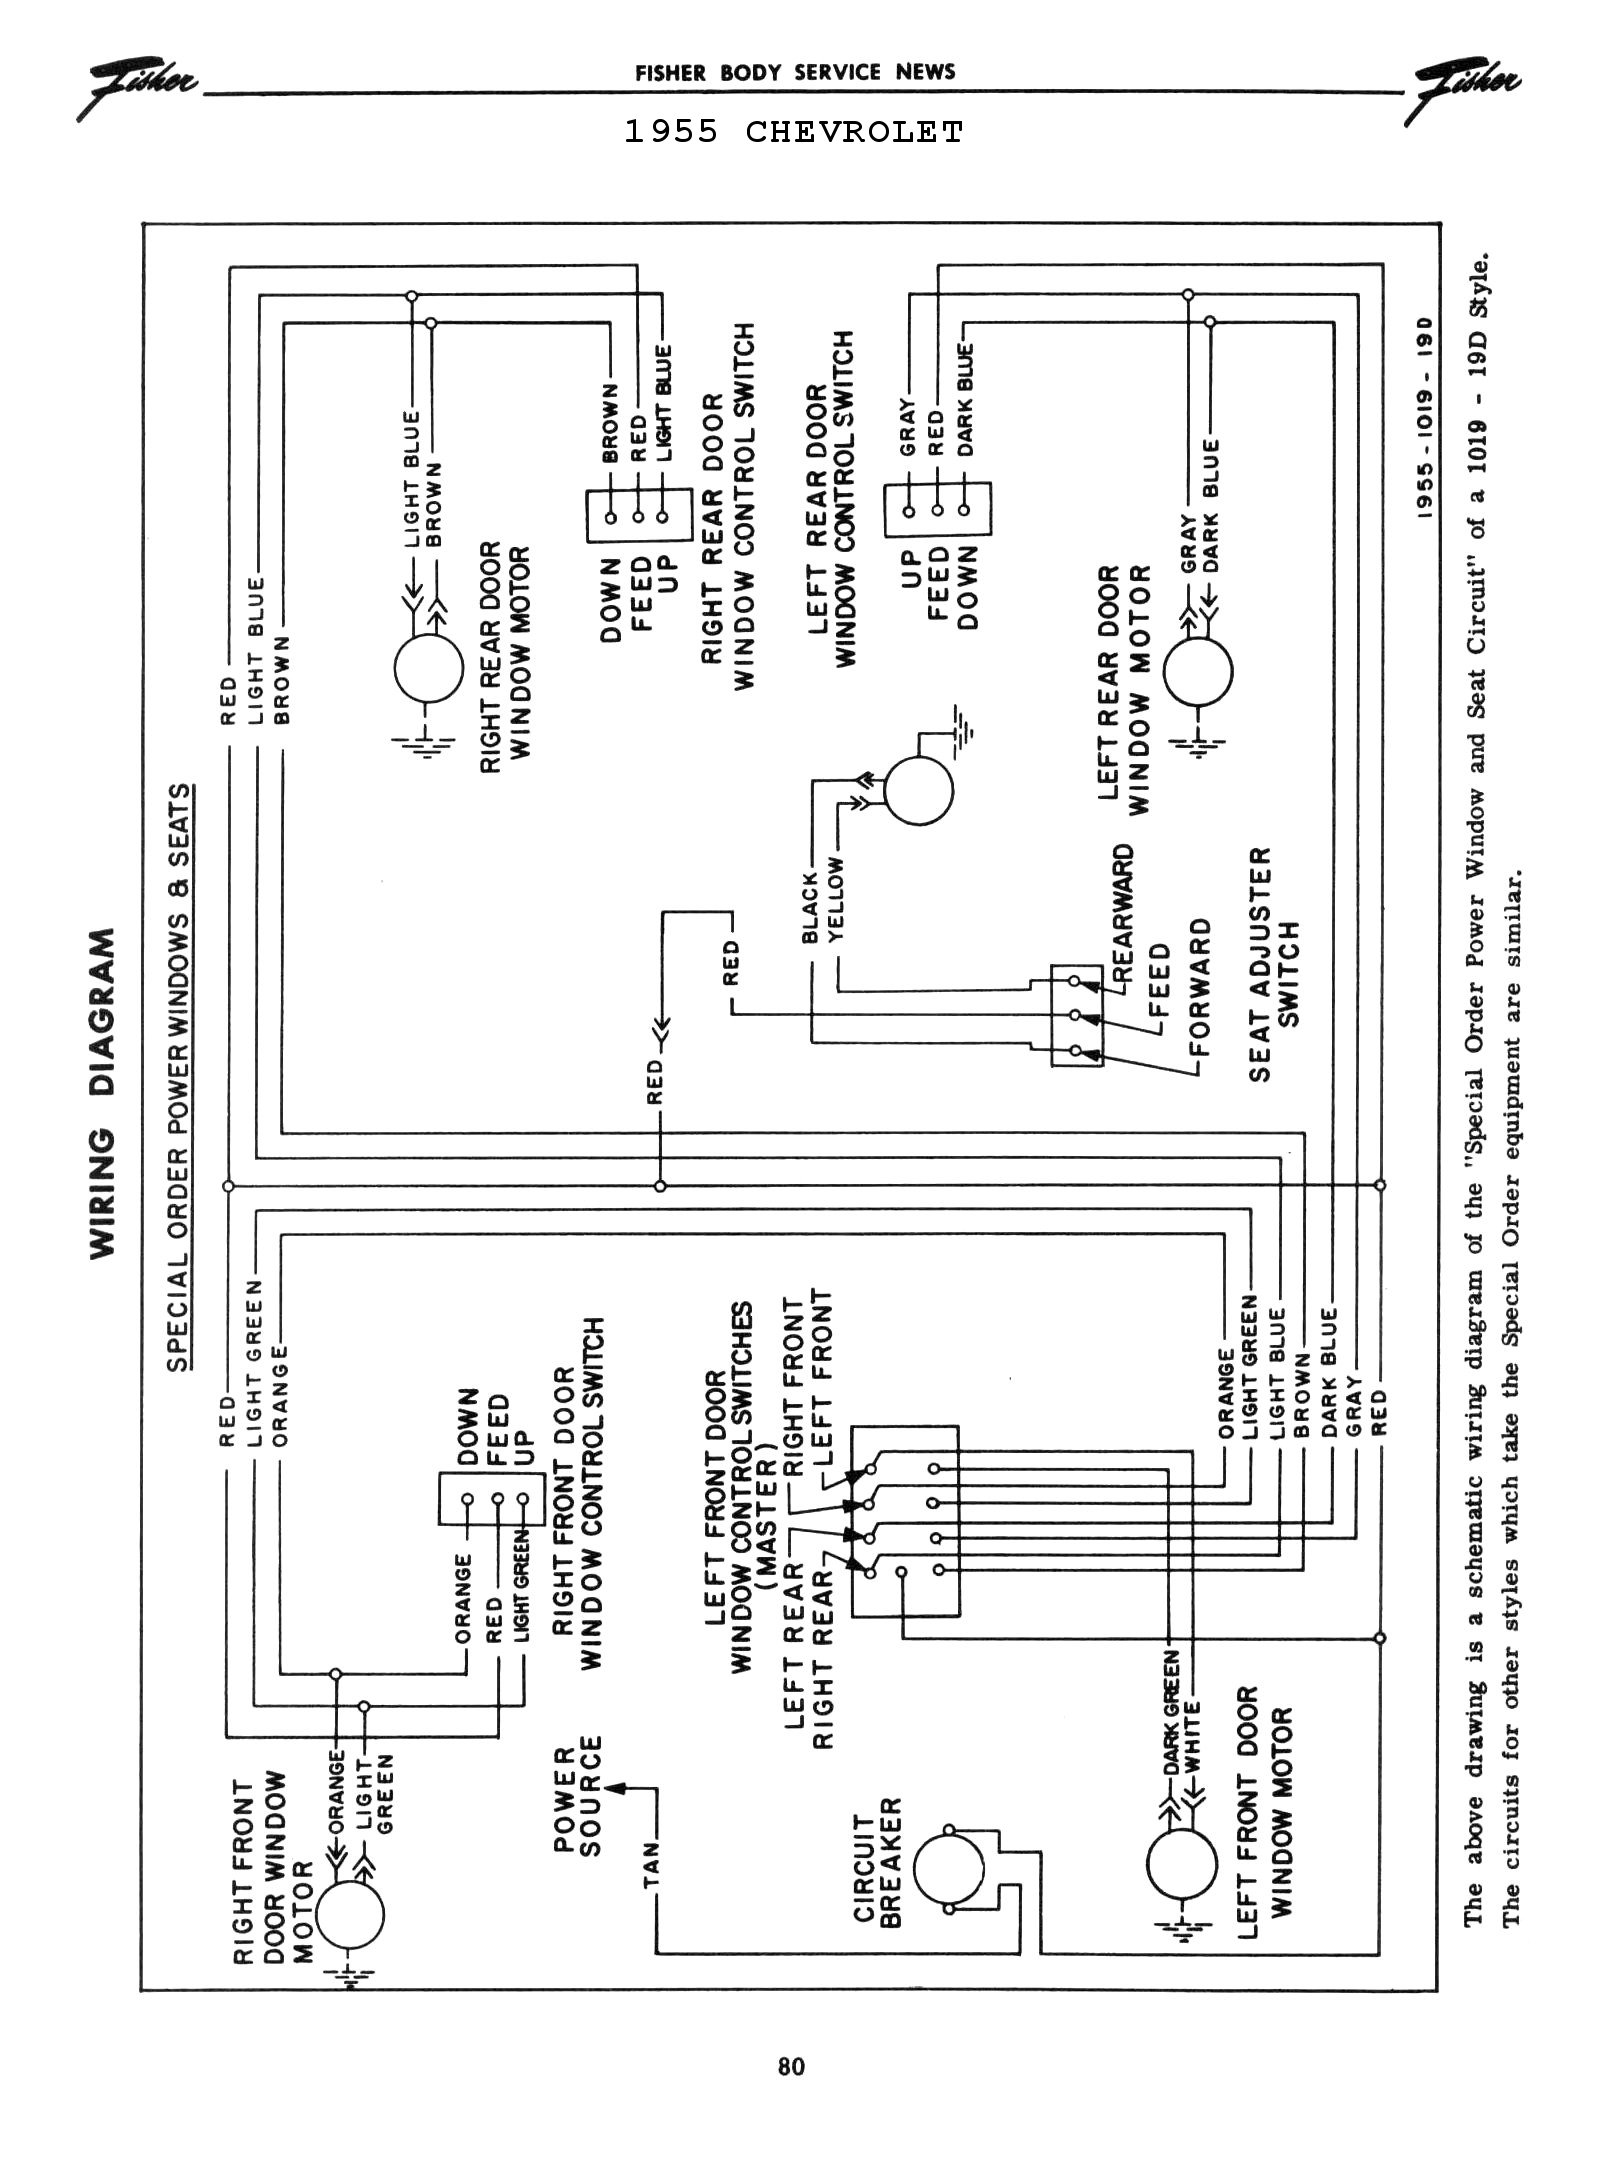 55fsn140180 chevy wiring diagrams 2004 Chevy Trailblazer Wiring-Diagram at virtualis.co